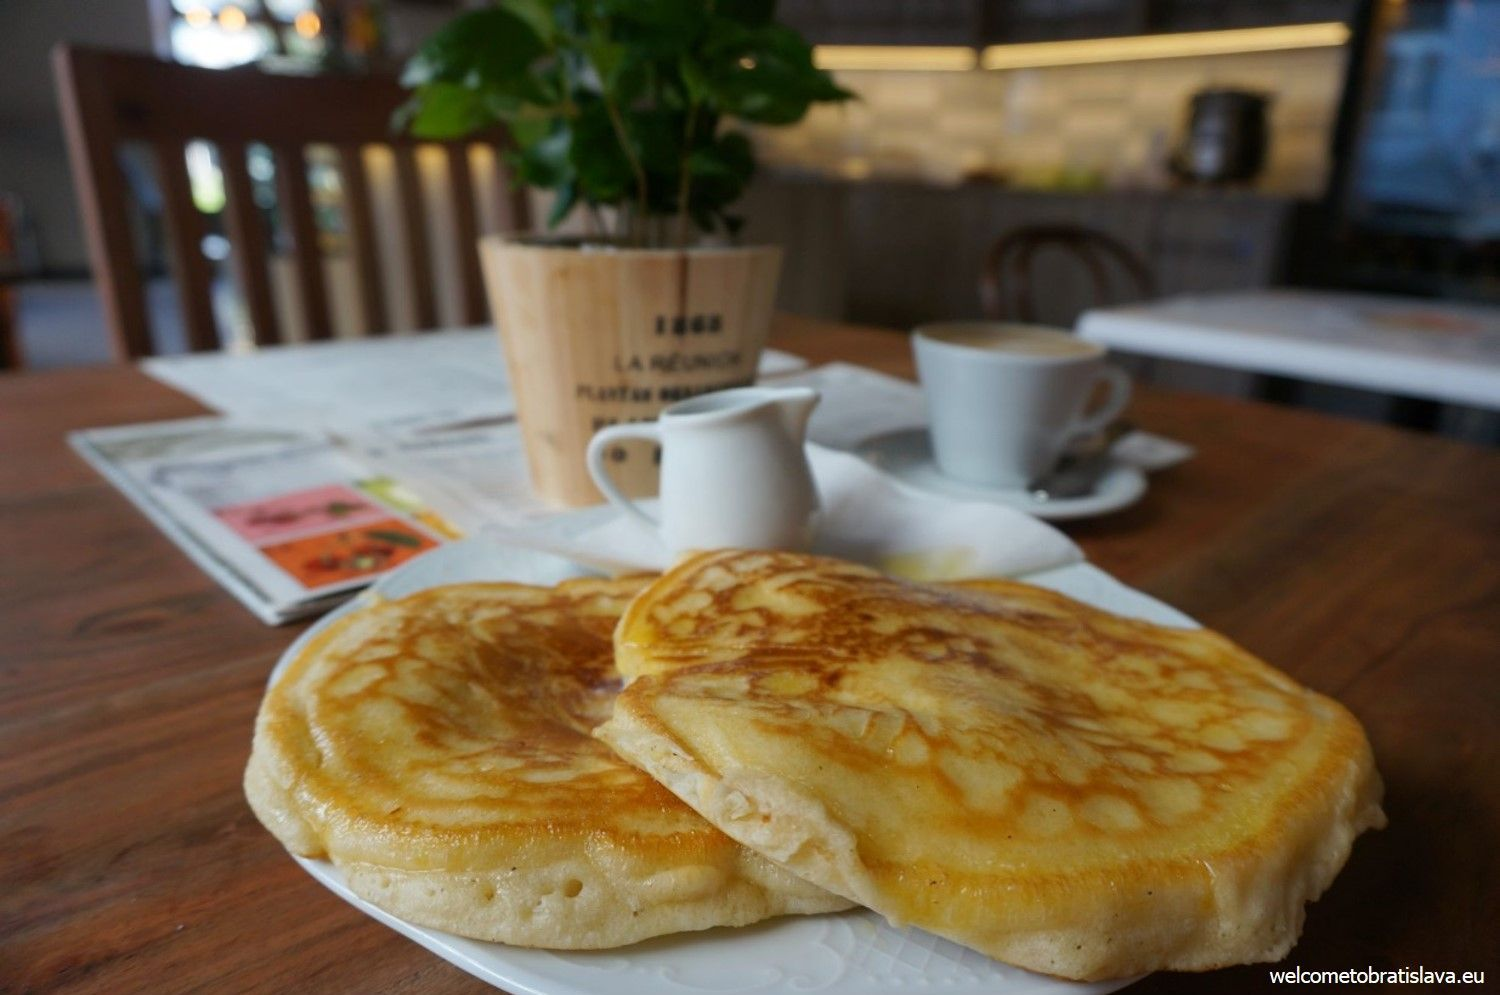 American pancakes with maple syrup